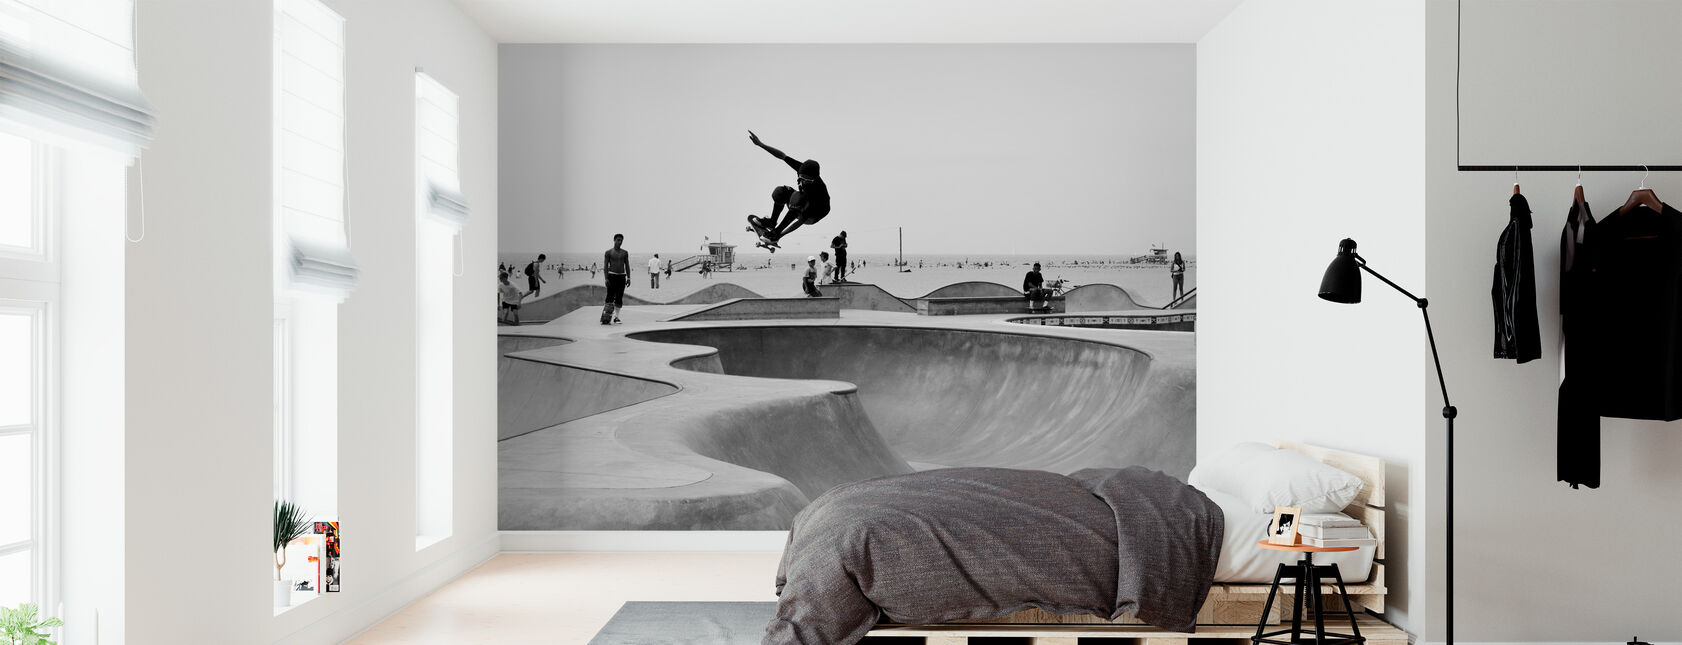 Skate Park - Wallpaper - Bedroom